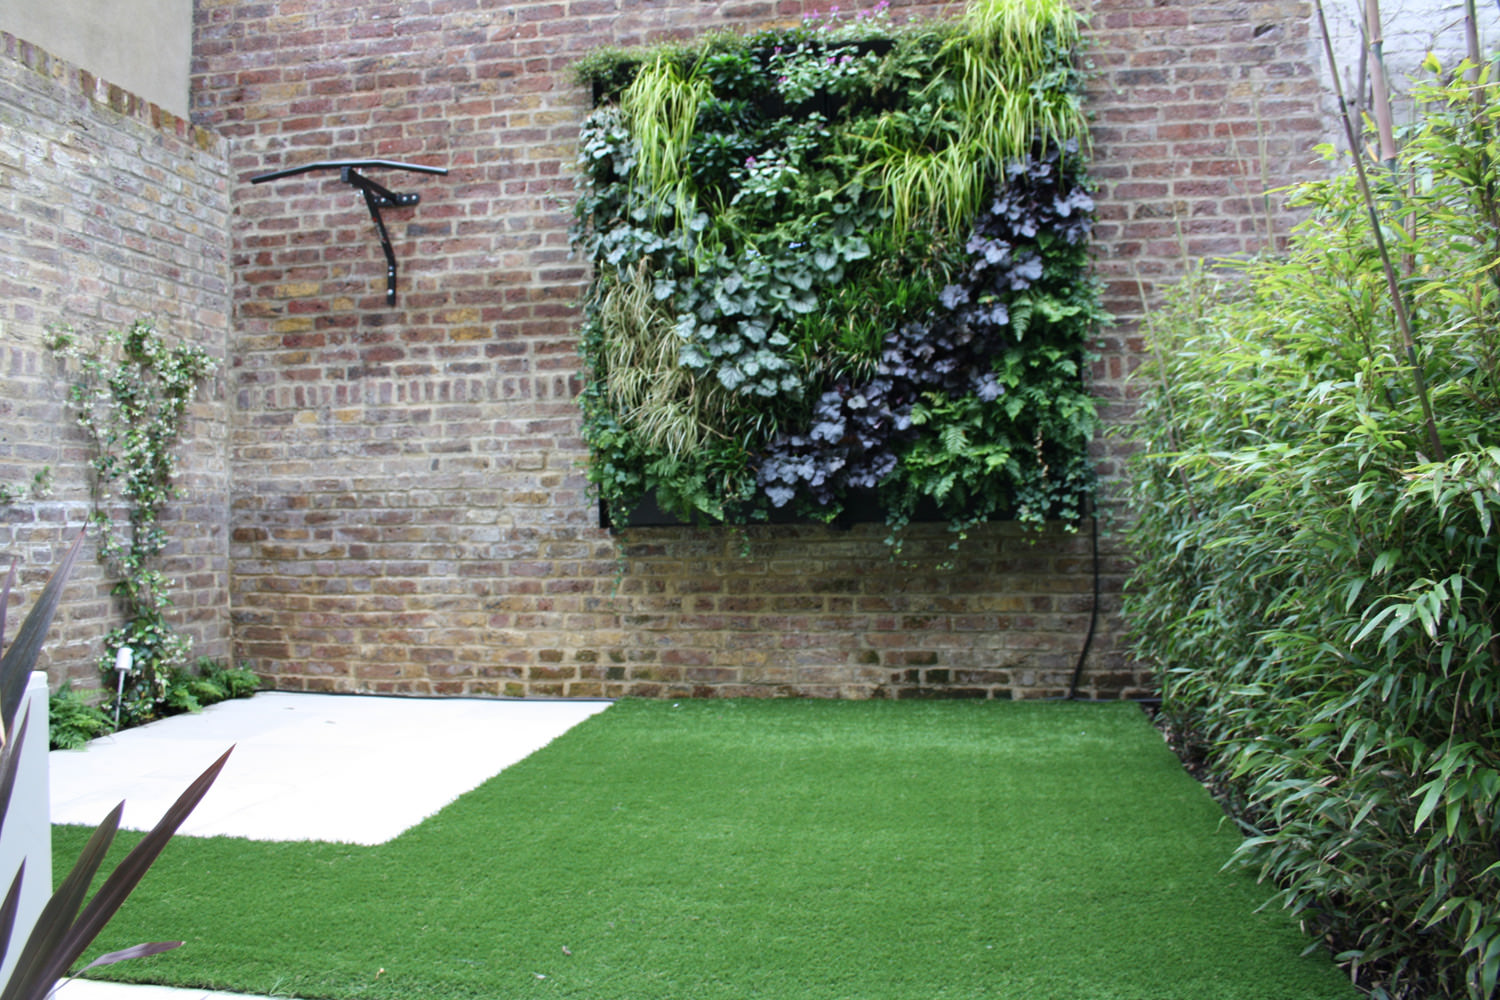 Top 10 london garden designs garden club london for Garden design for small gardens pictures